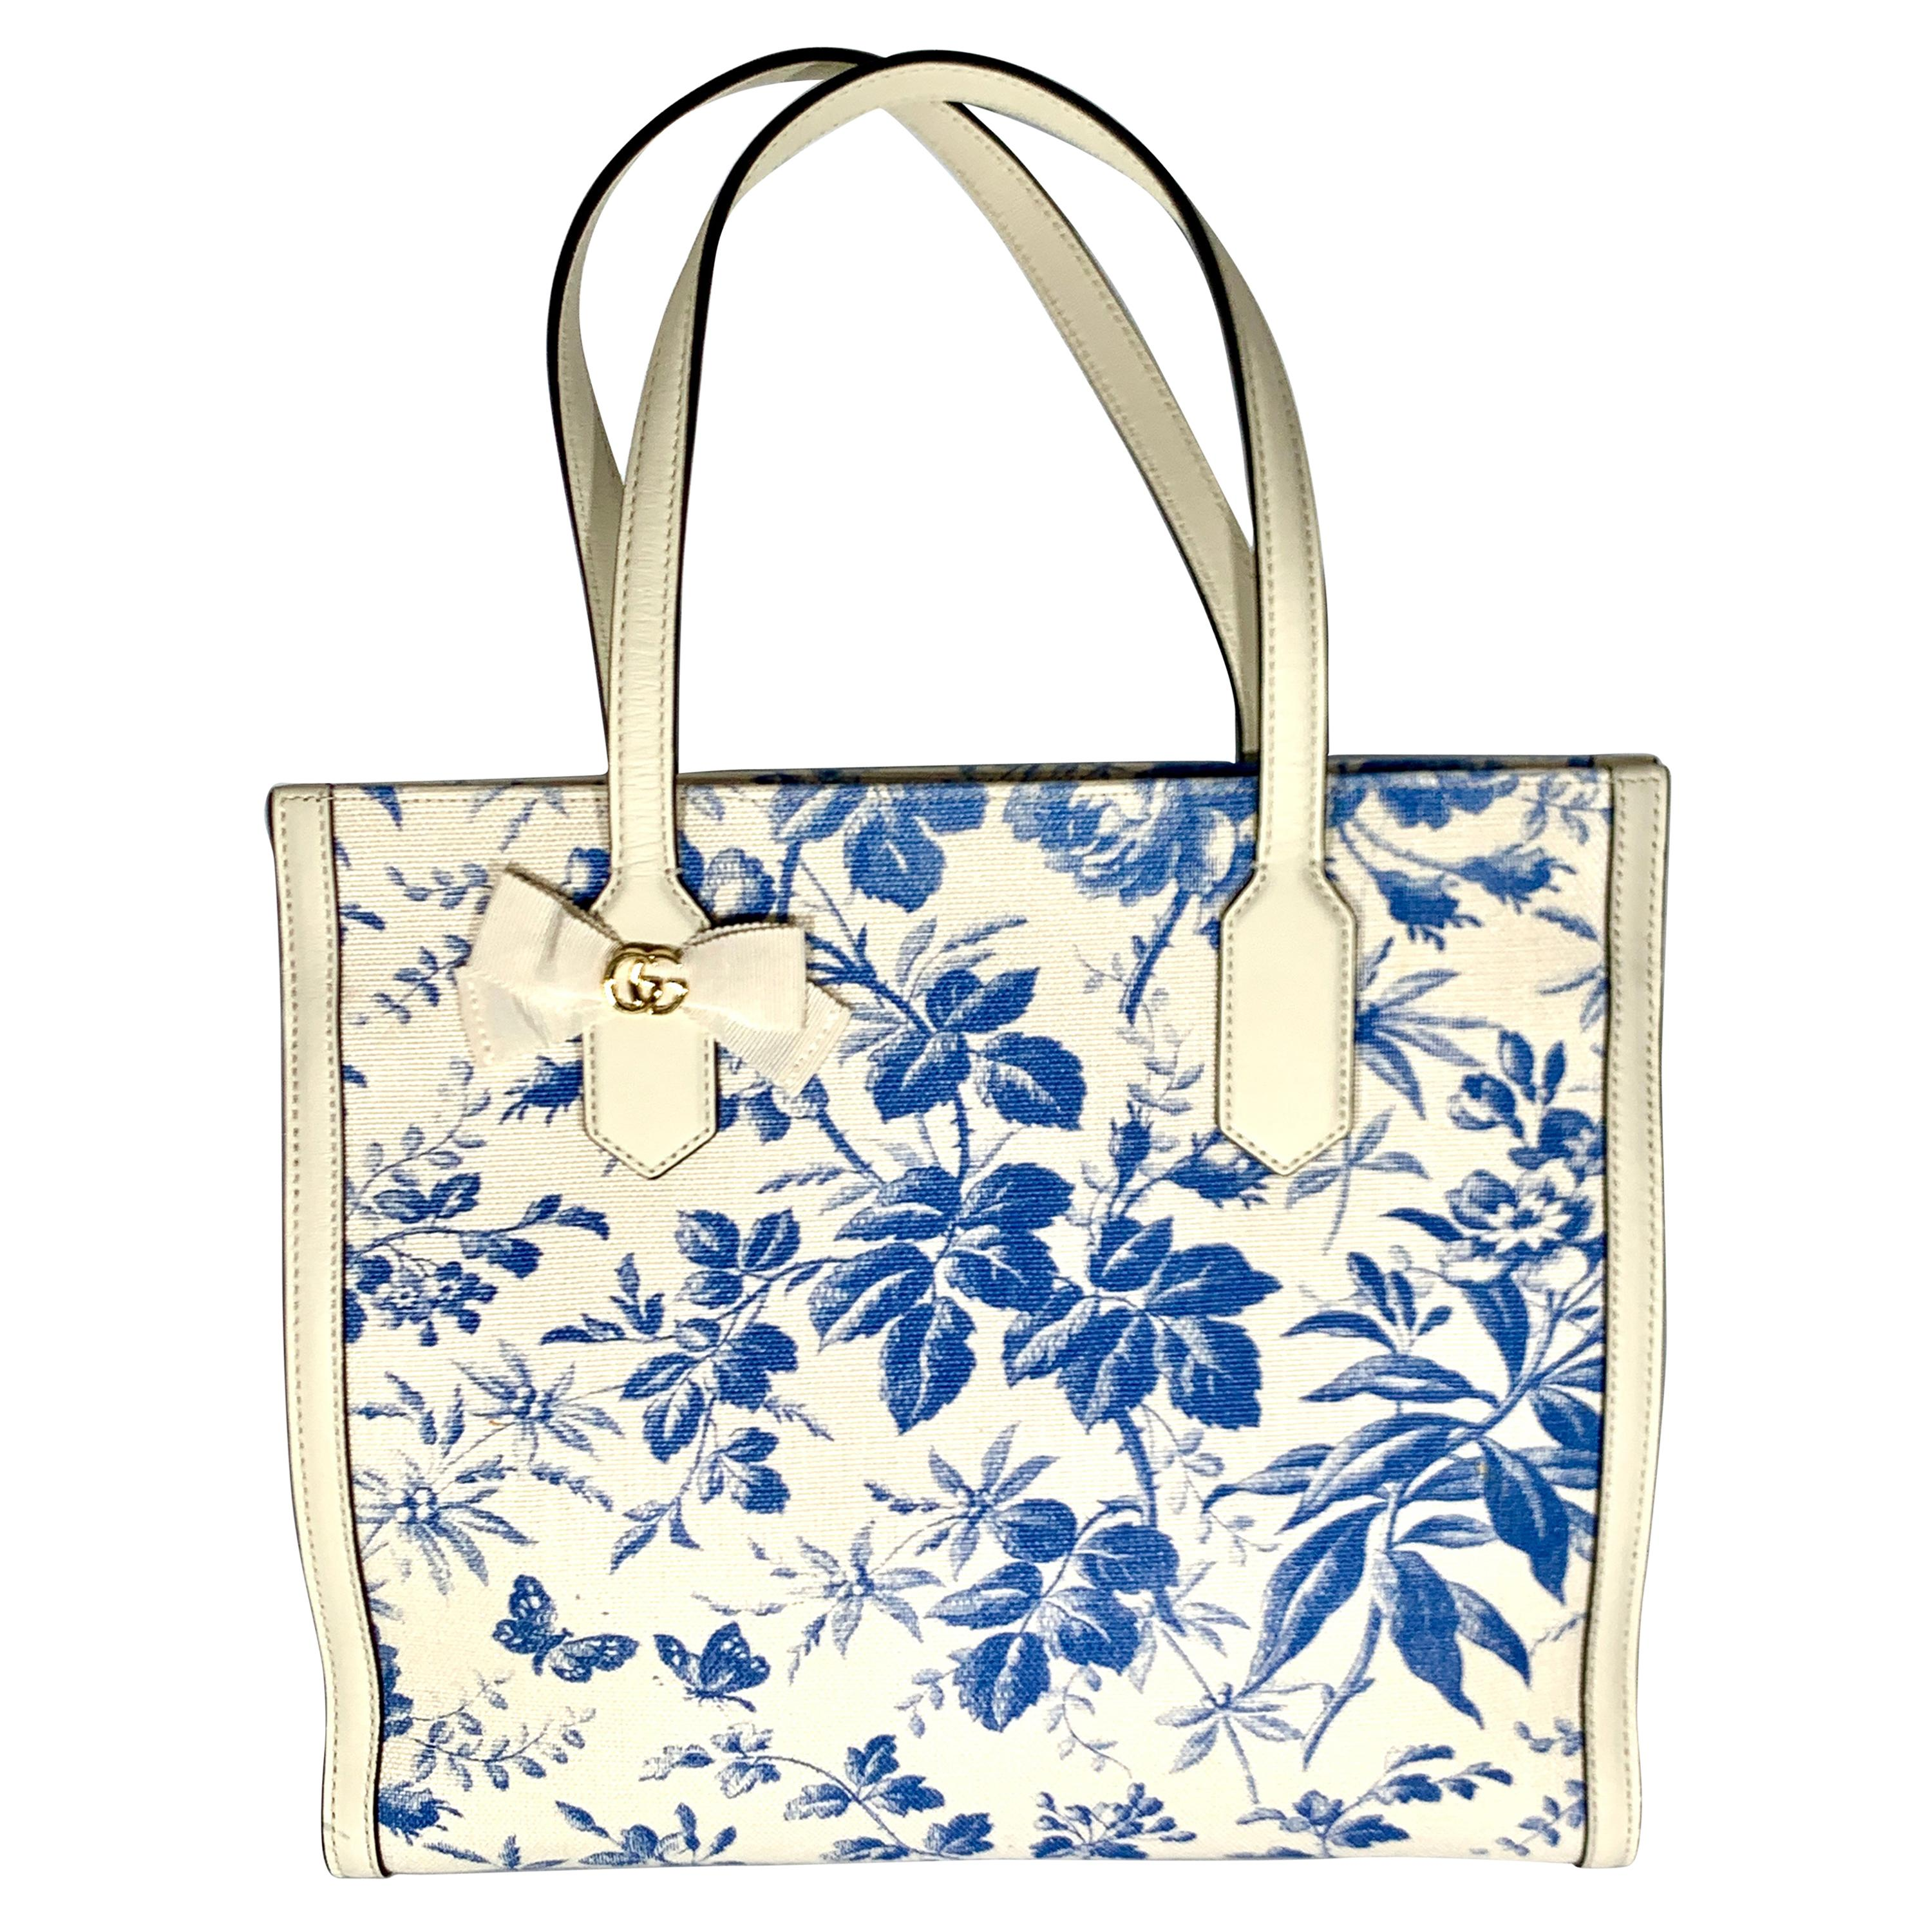 Gucci Flora Whites Canvas Leather Trim Navy Blue With Flowers  Tote Handbag